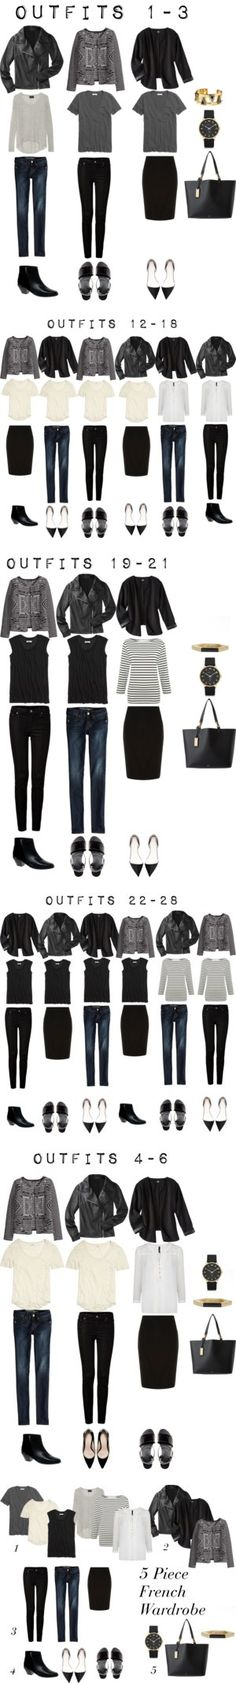 5 Item French Wardrobe by designismymuse on Polyvore featuring Madewell, Lauren Ralph Lauren, ASOS, American Eagle Outfitters, 7 For All Mankind, Dorothy Perkins, Mossimo, Zara, H&M and Line - I love this idea: a few items that you can use for multiple outfits. I don't love the leather jacket, patterned blazer or the shoes, but the idea is great.